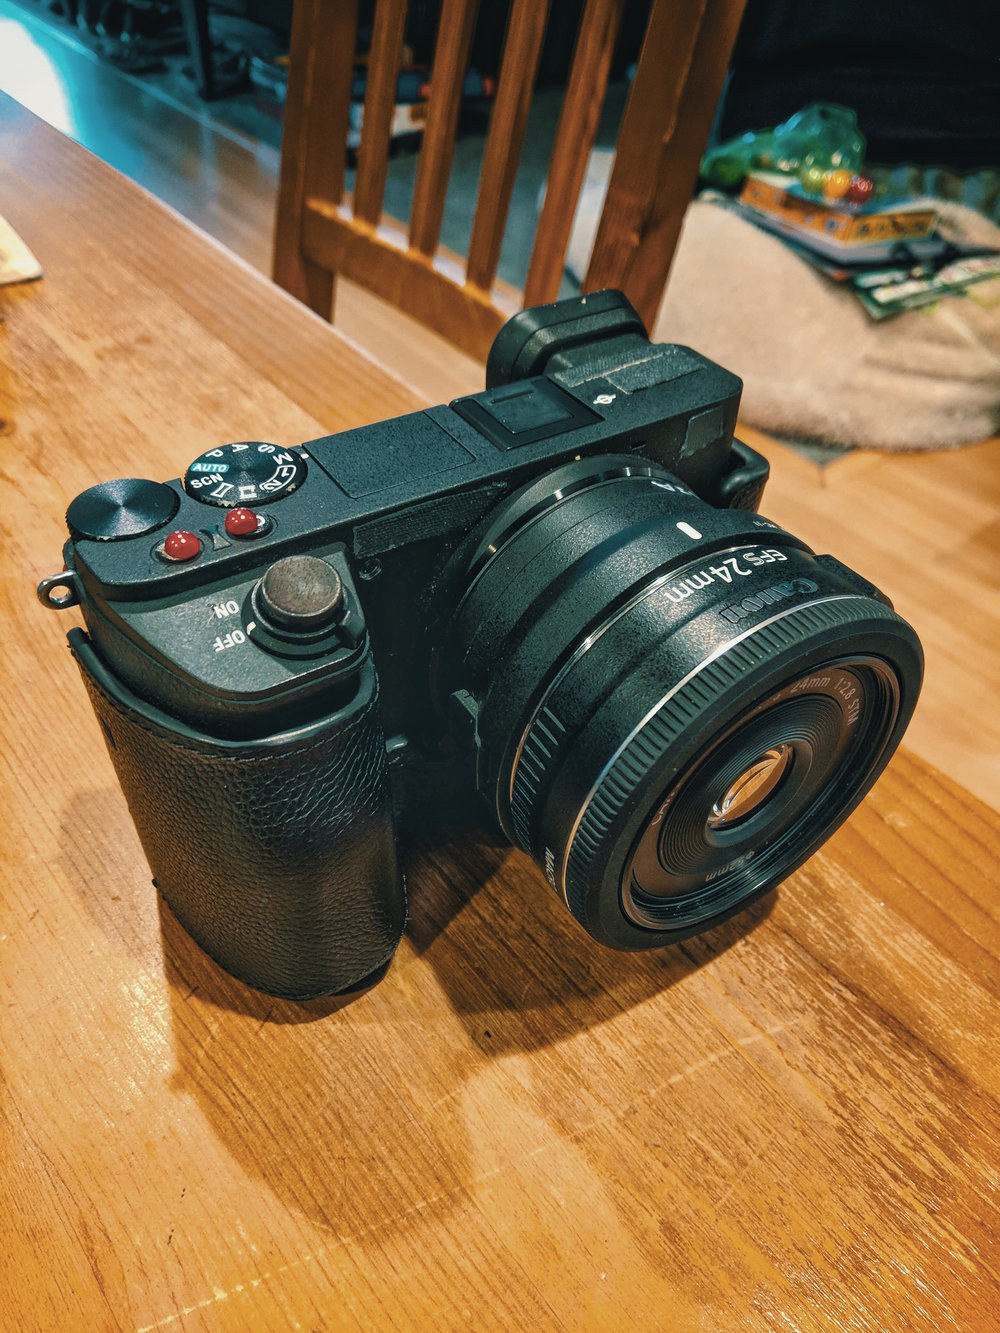 The Sony A6500 with MC-11 Adapter & Canon 24mm 2.8 Pancake Lens